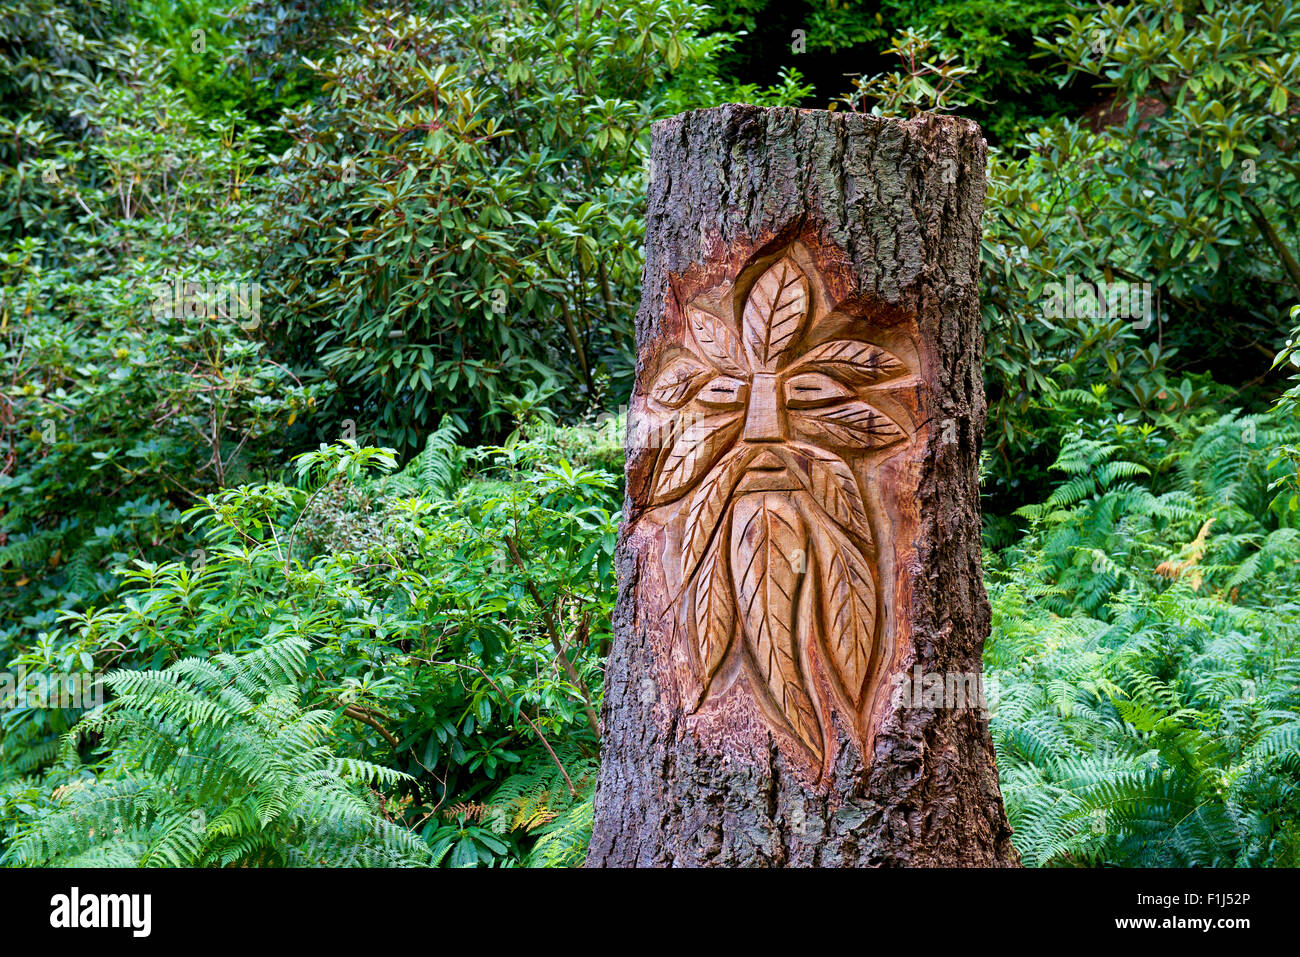 Tree stump carved with face of green man, in the gardens of Muncaster Castle, West Cumbria, England UK - Stock Image